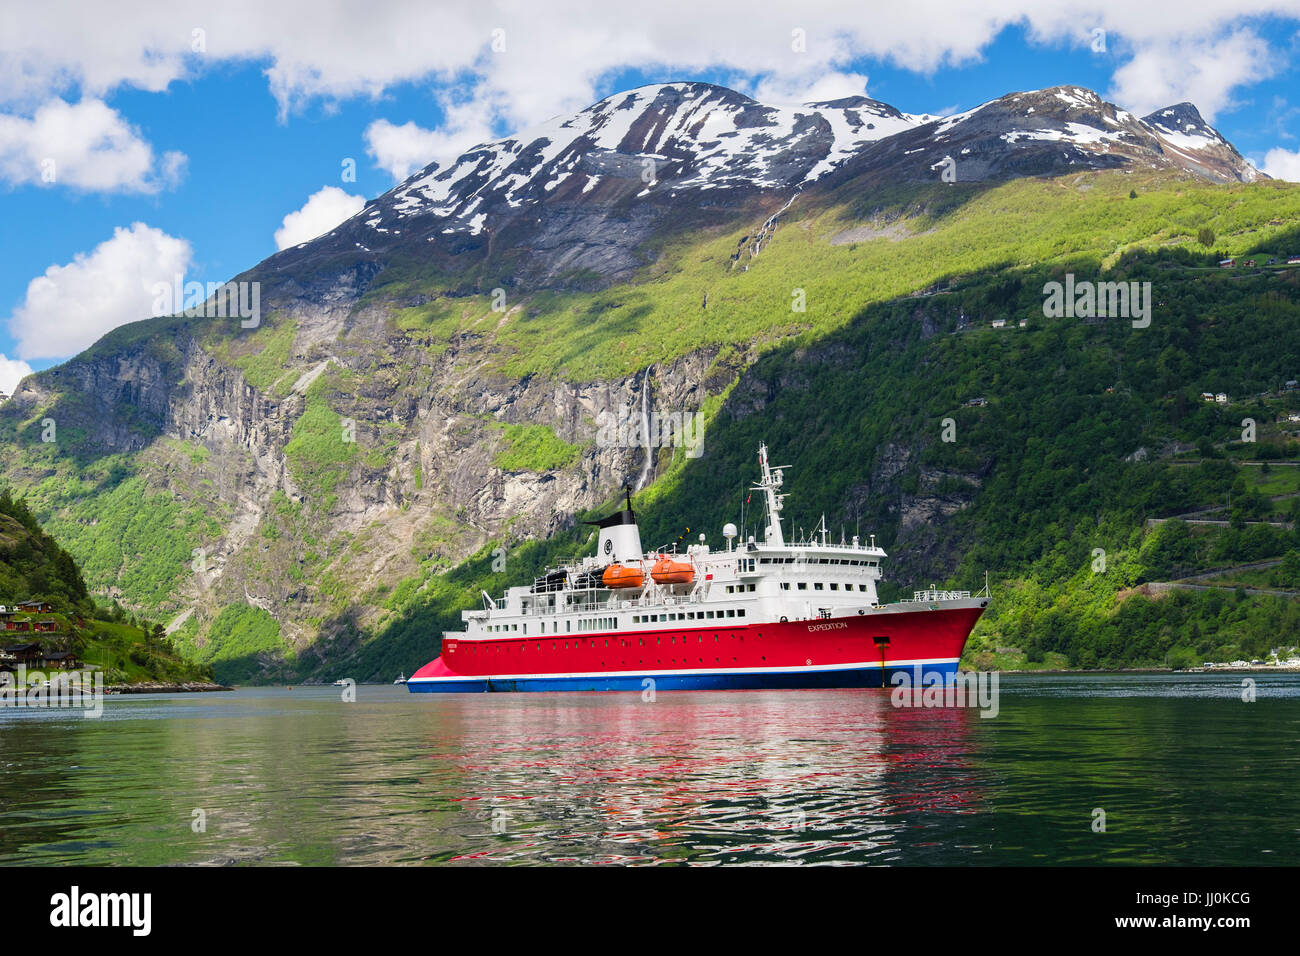 Small cruise ship G Adventures Expedition anchored in scenic Geirangerfjorden or Geiranger Fjord in summer. Geiranger - Stock Image